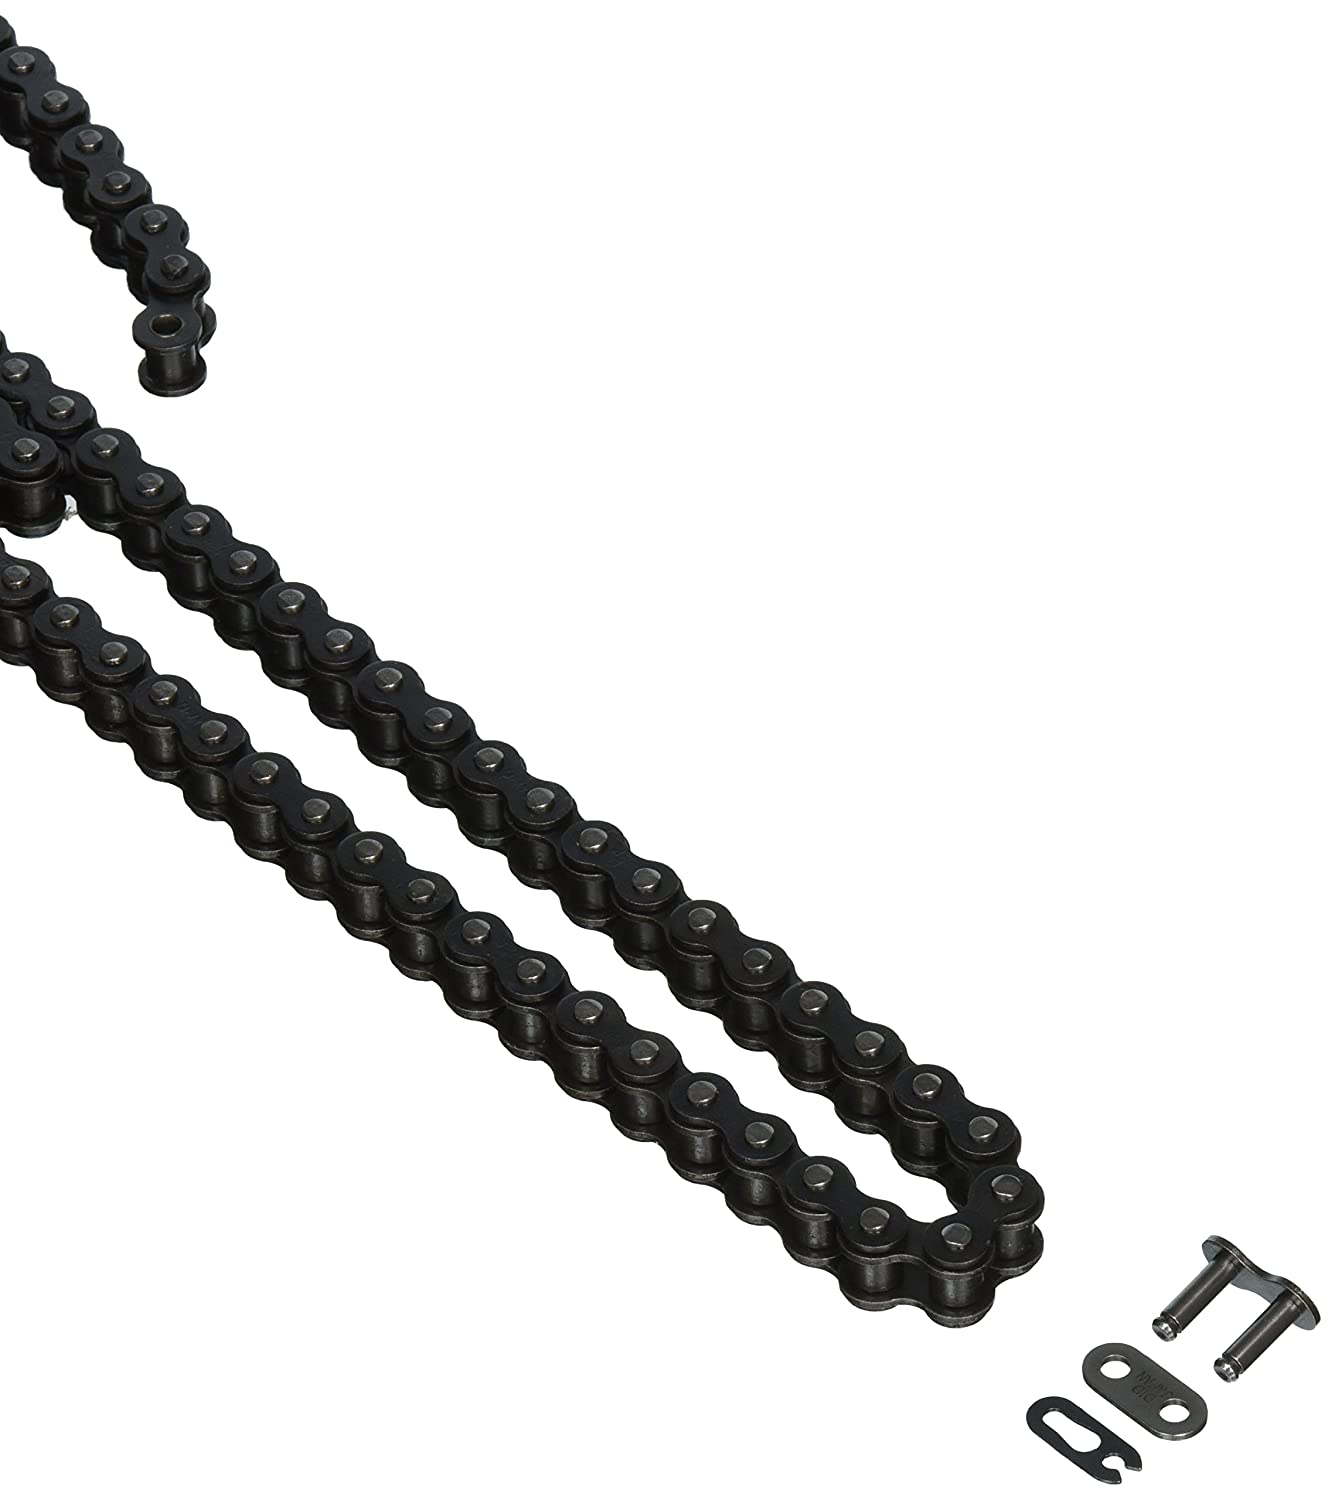 DID 428STD-110 Standard Series Chain with Connecting Link